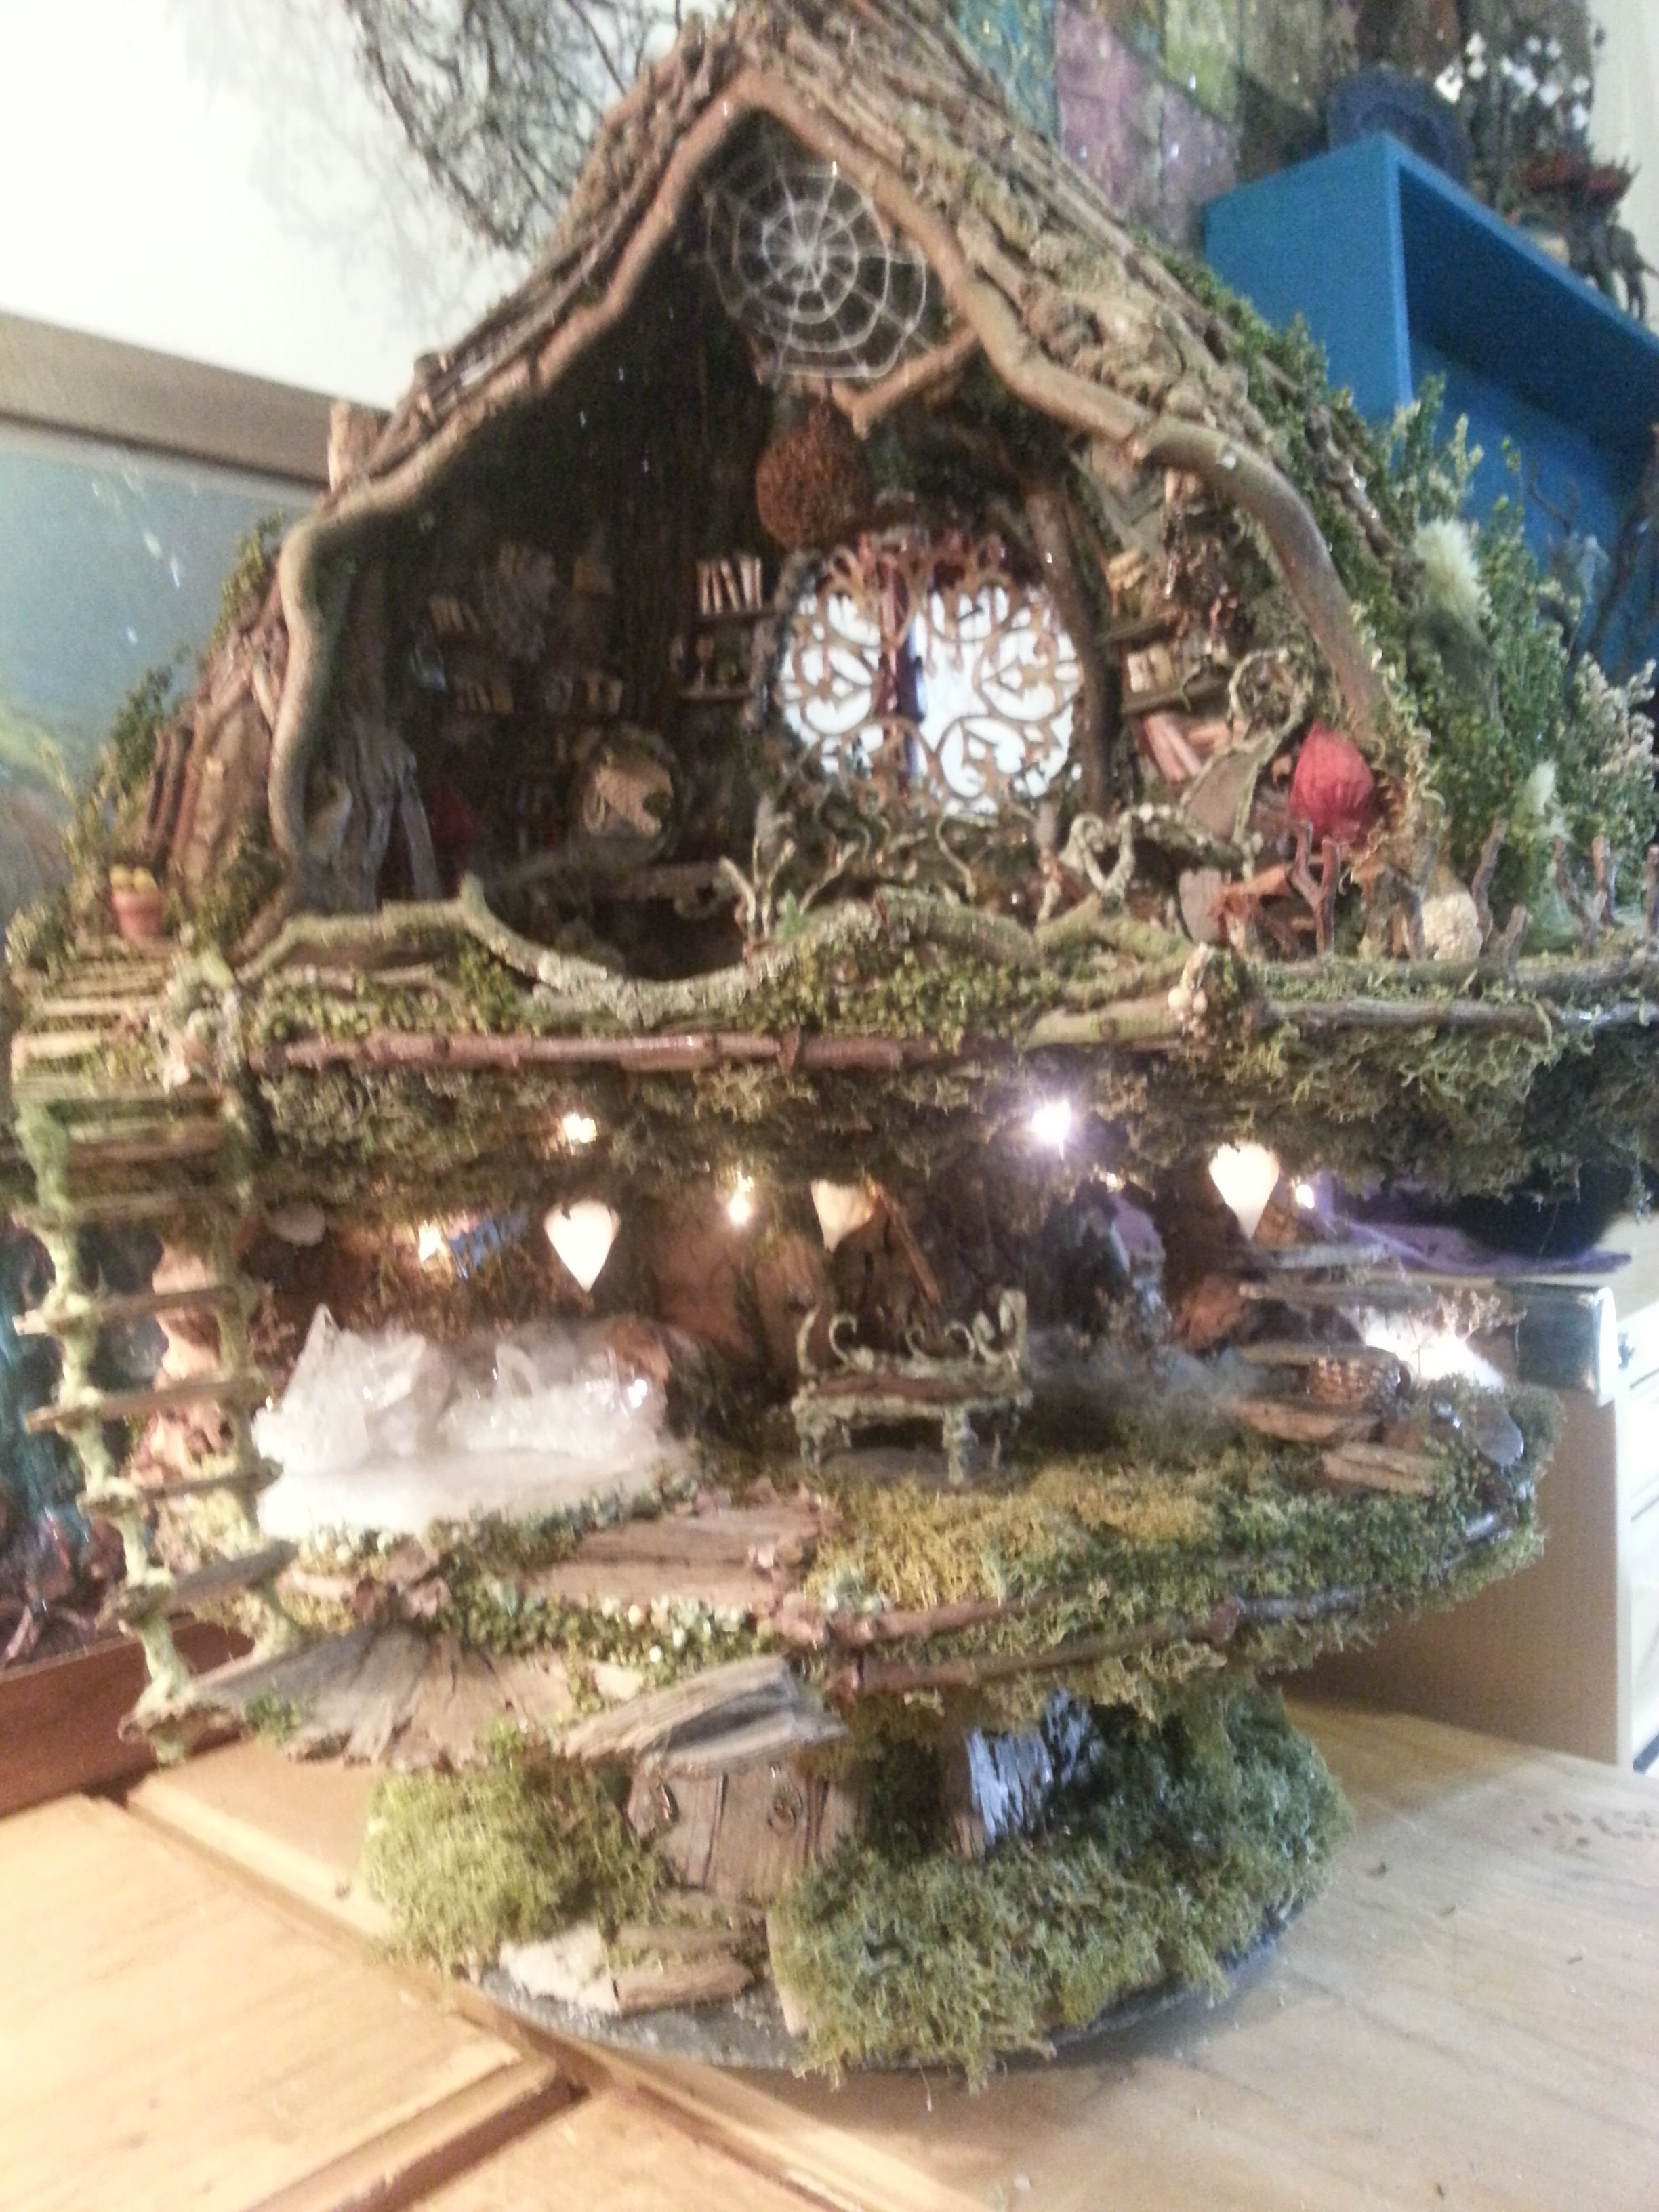 Fairy house A 1/12 scale fairy tree-house made of natural materials ...